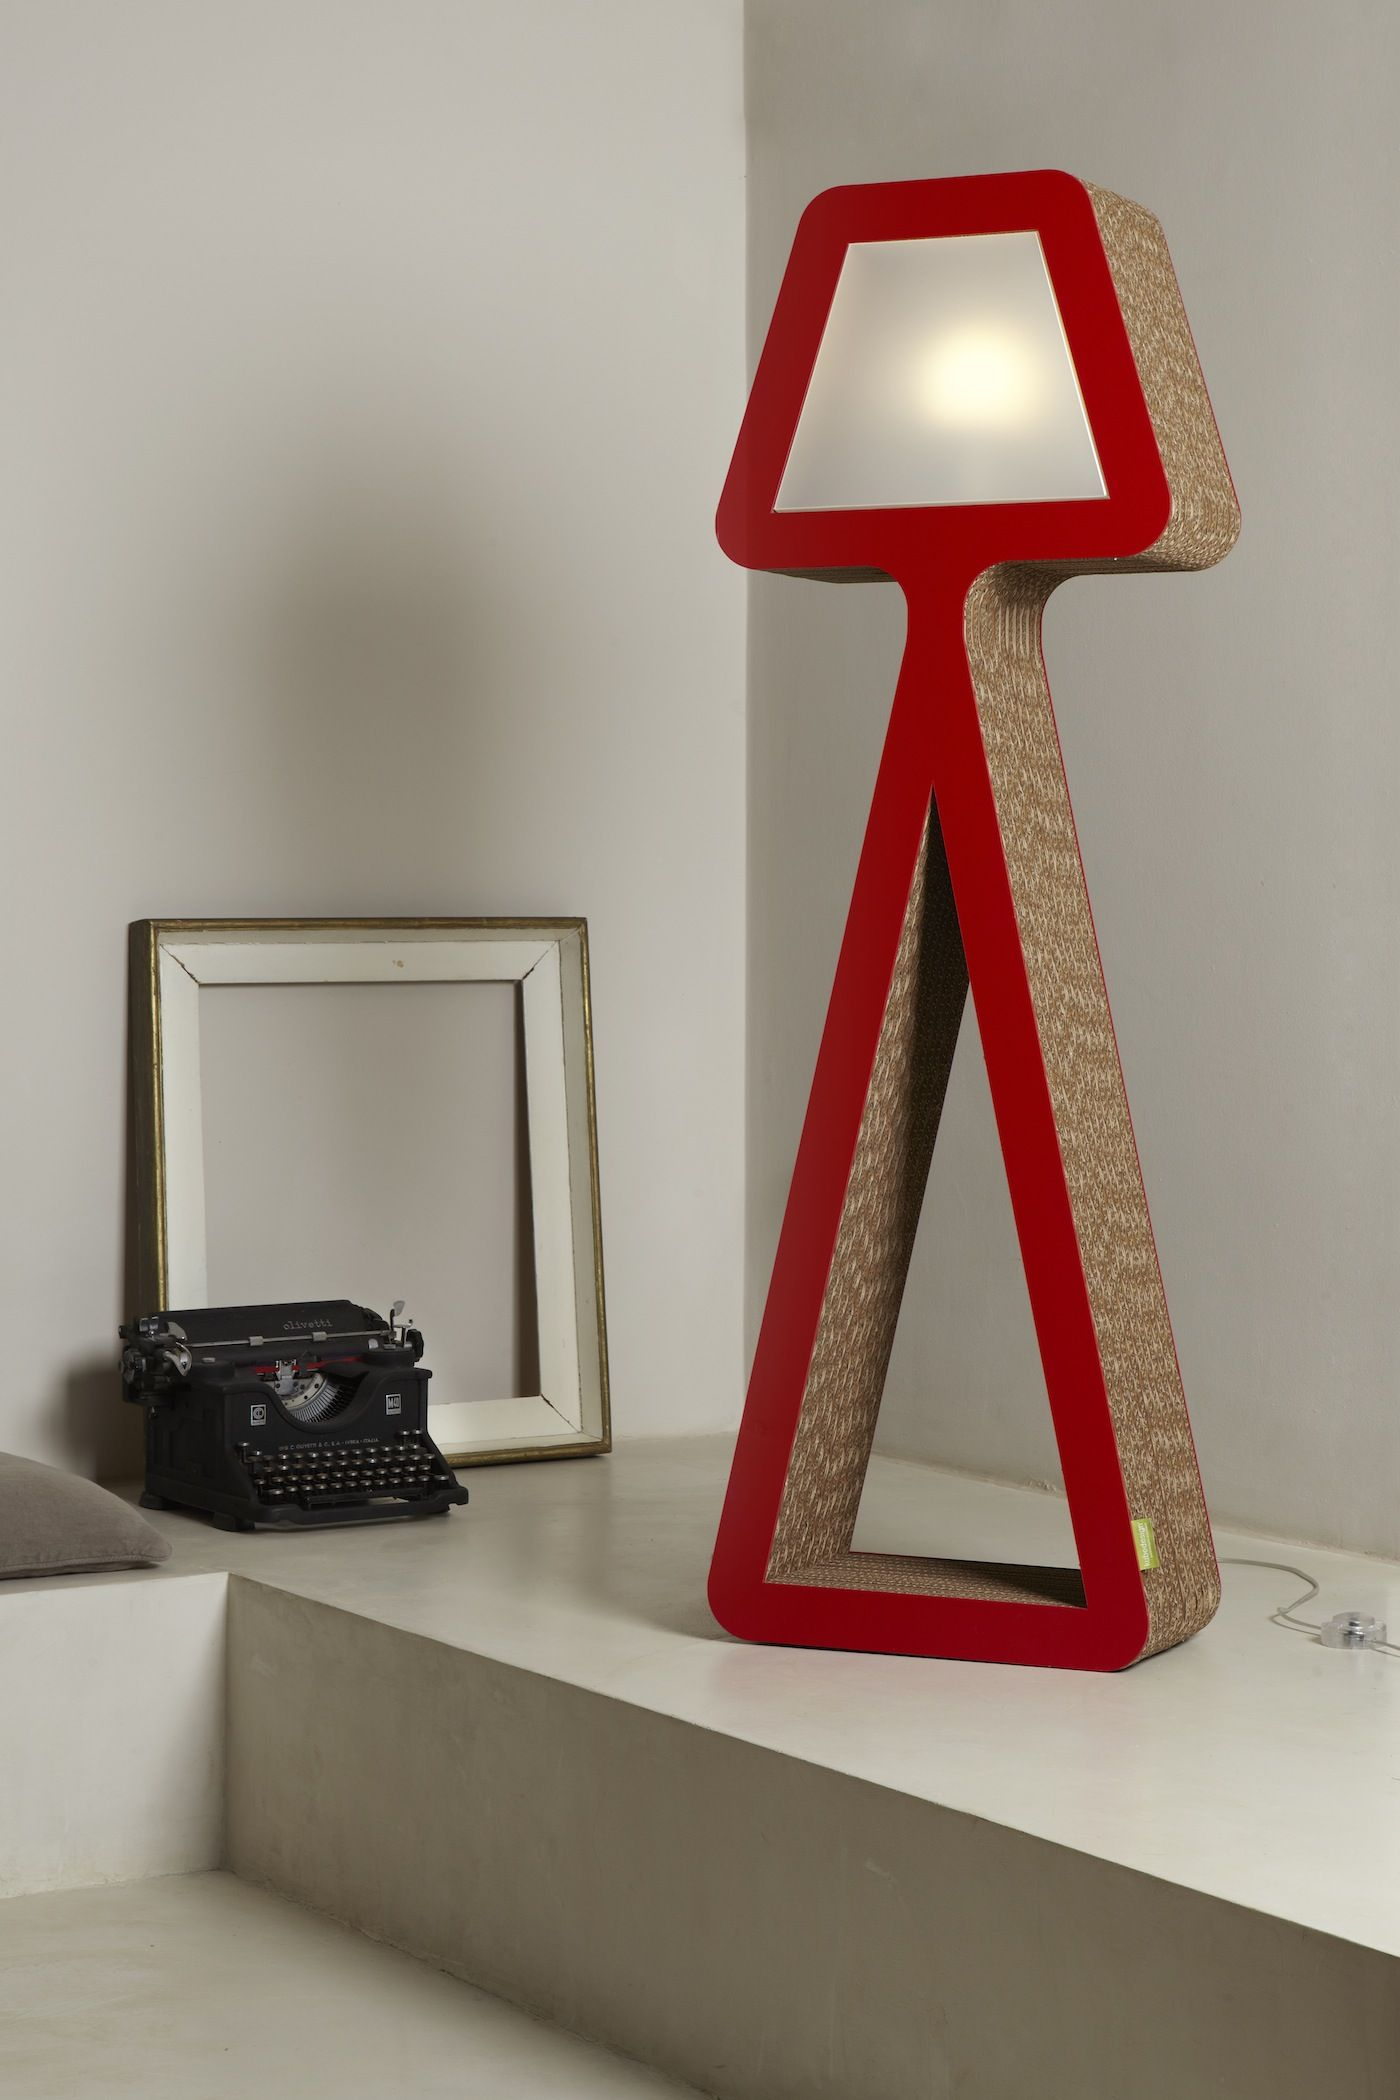 Design Lamp Karton Lamp Art Biancaneve From Kubedesign Collection